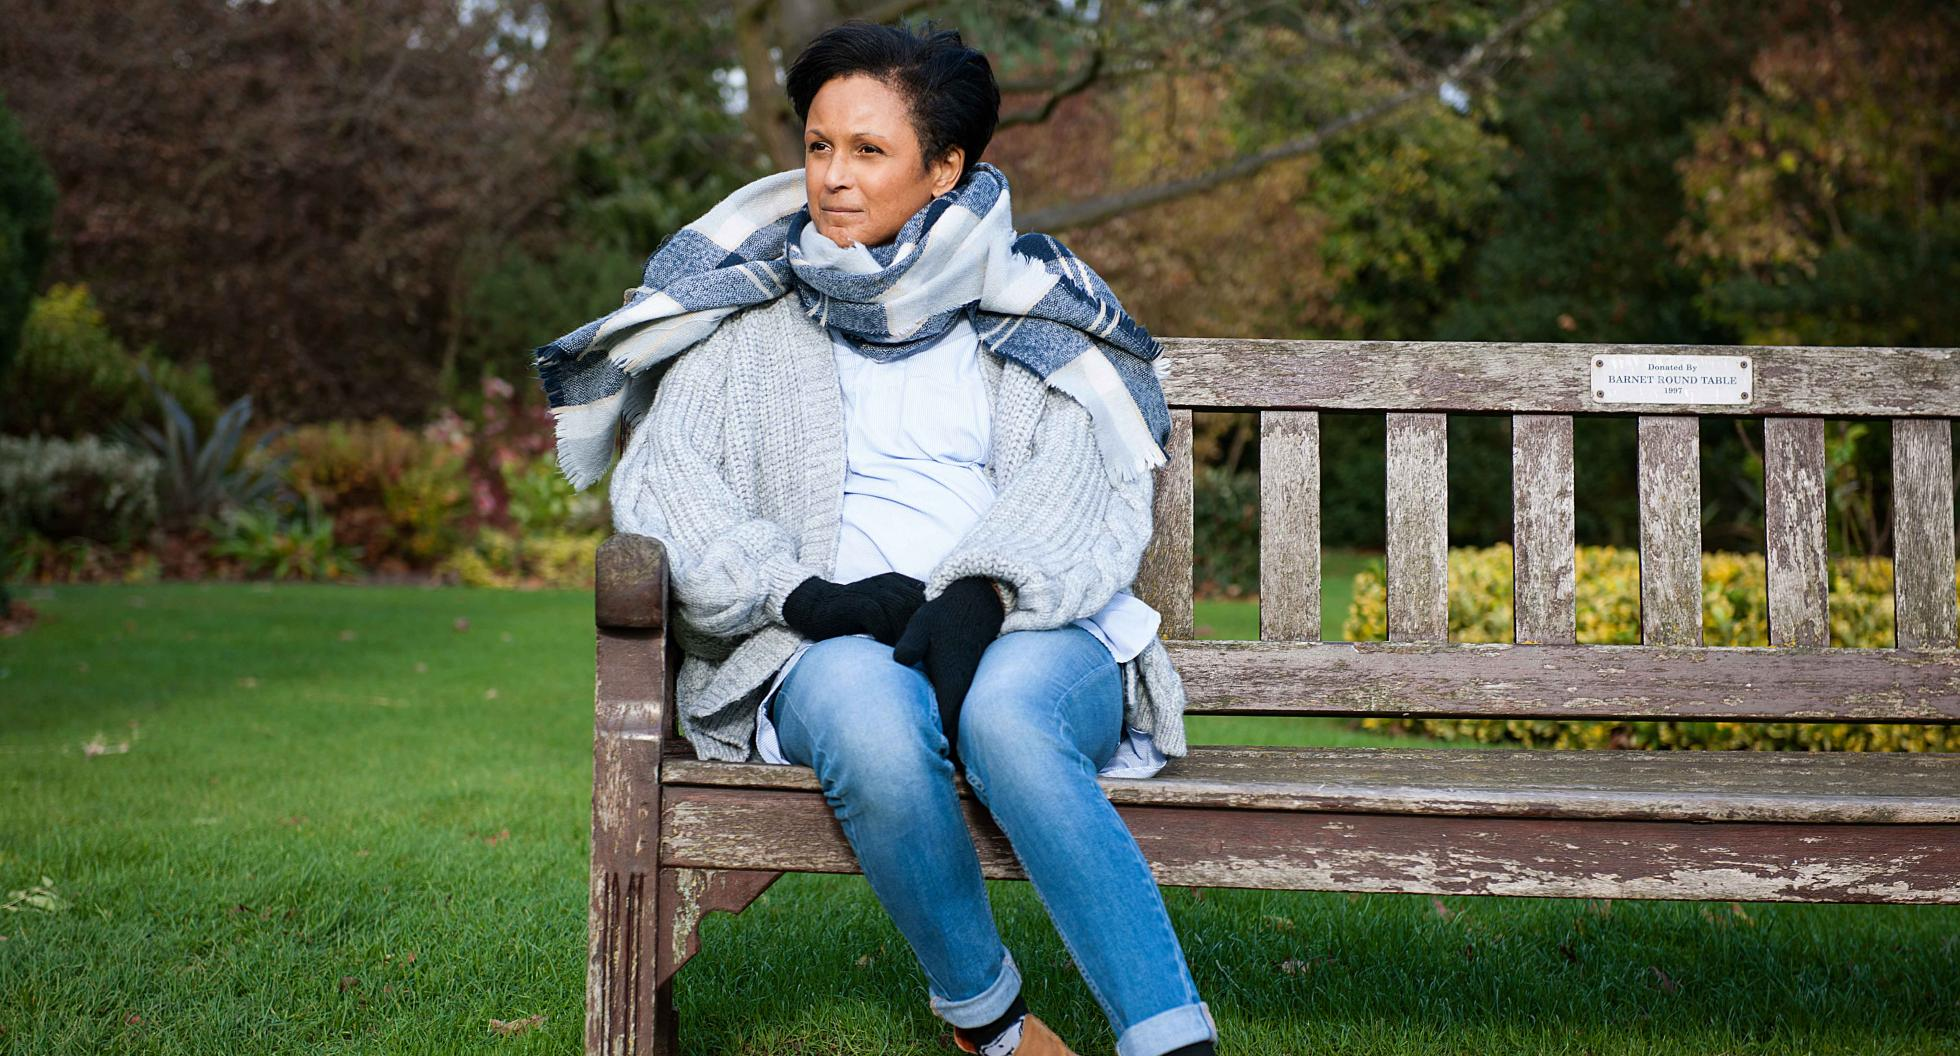 Woman with scleroderma sitting on park bench